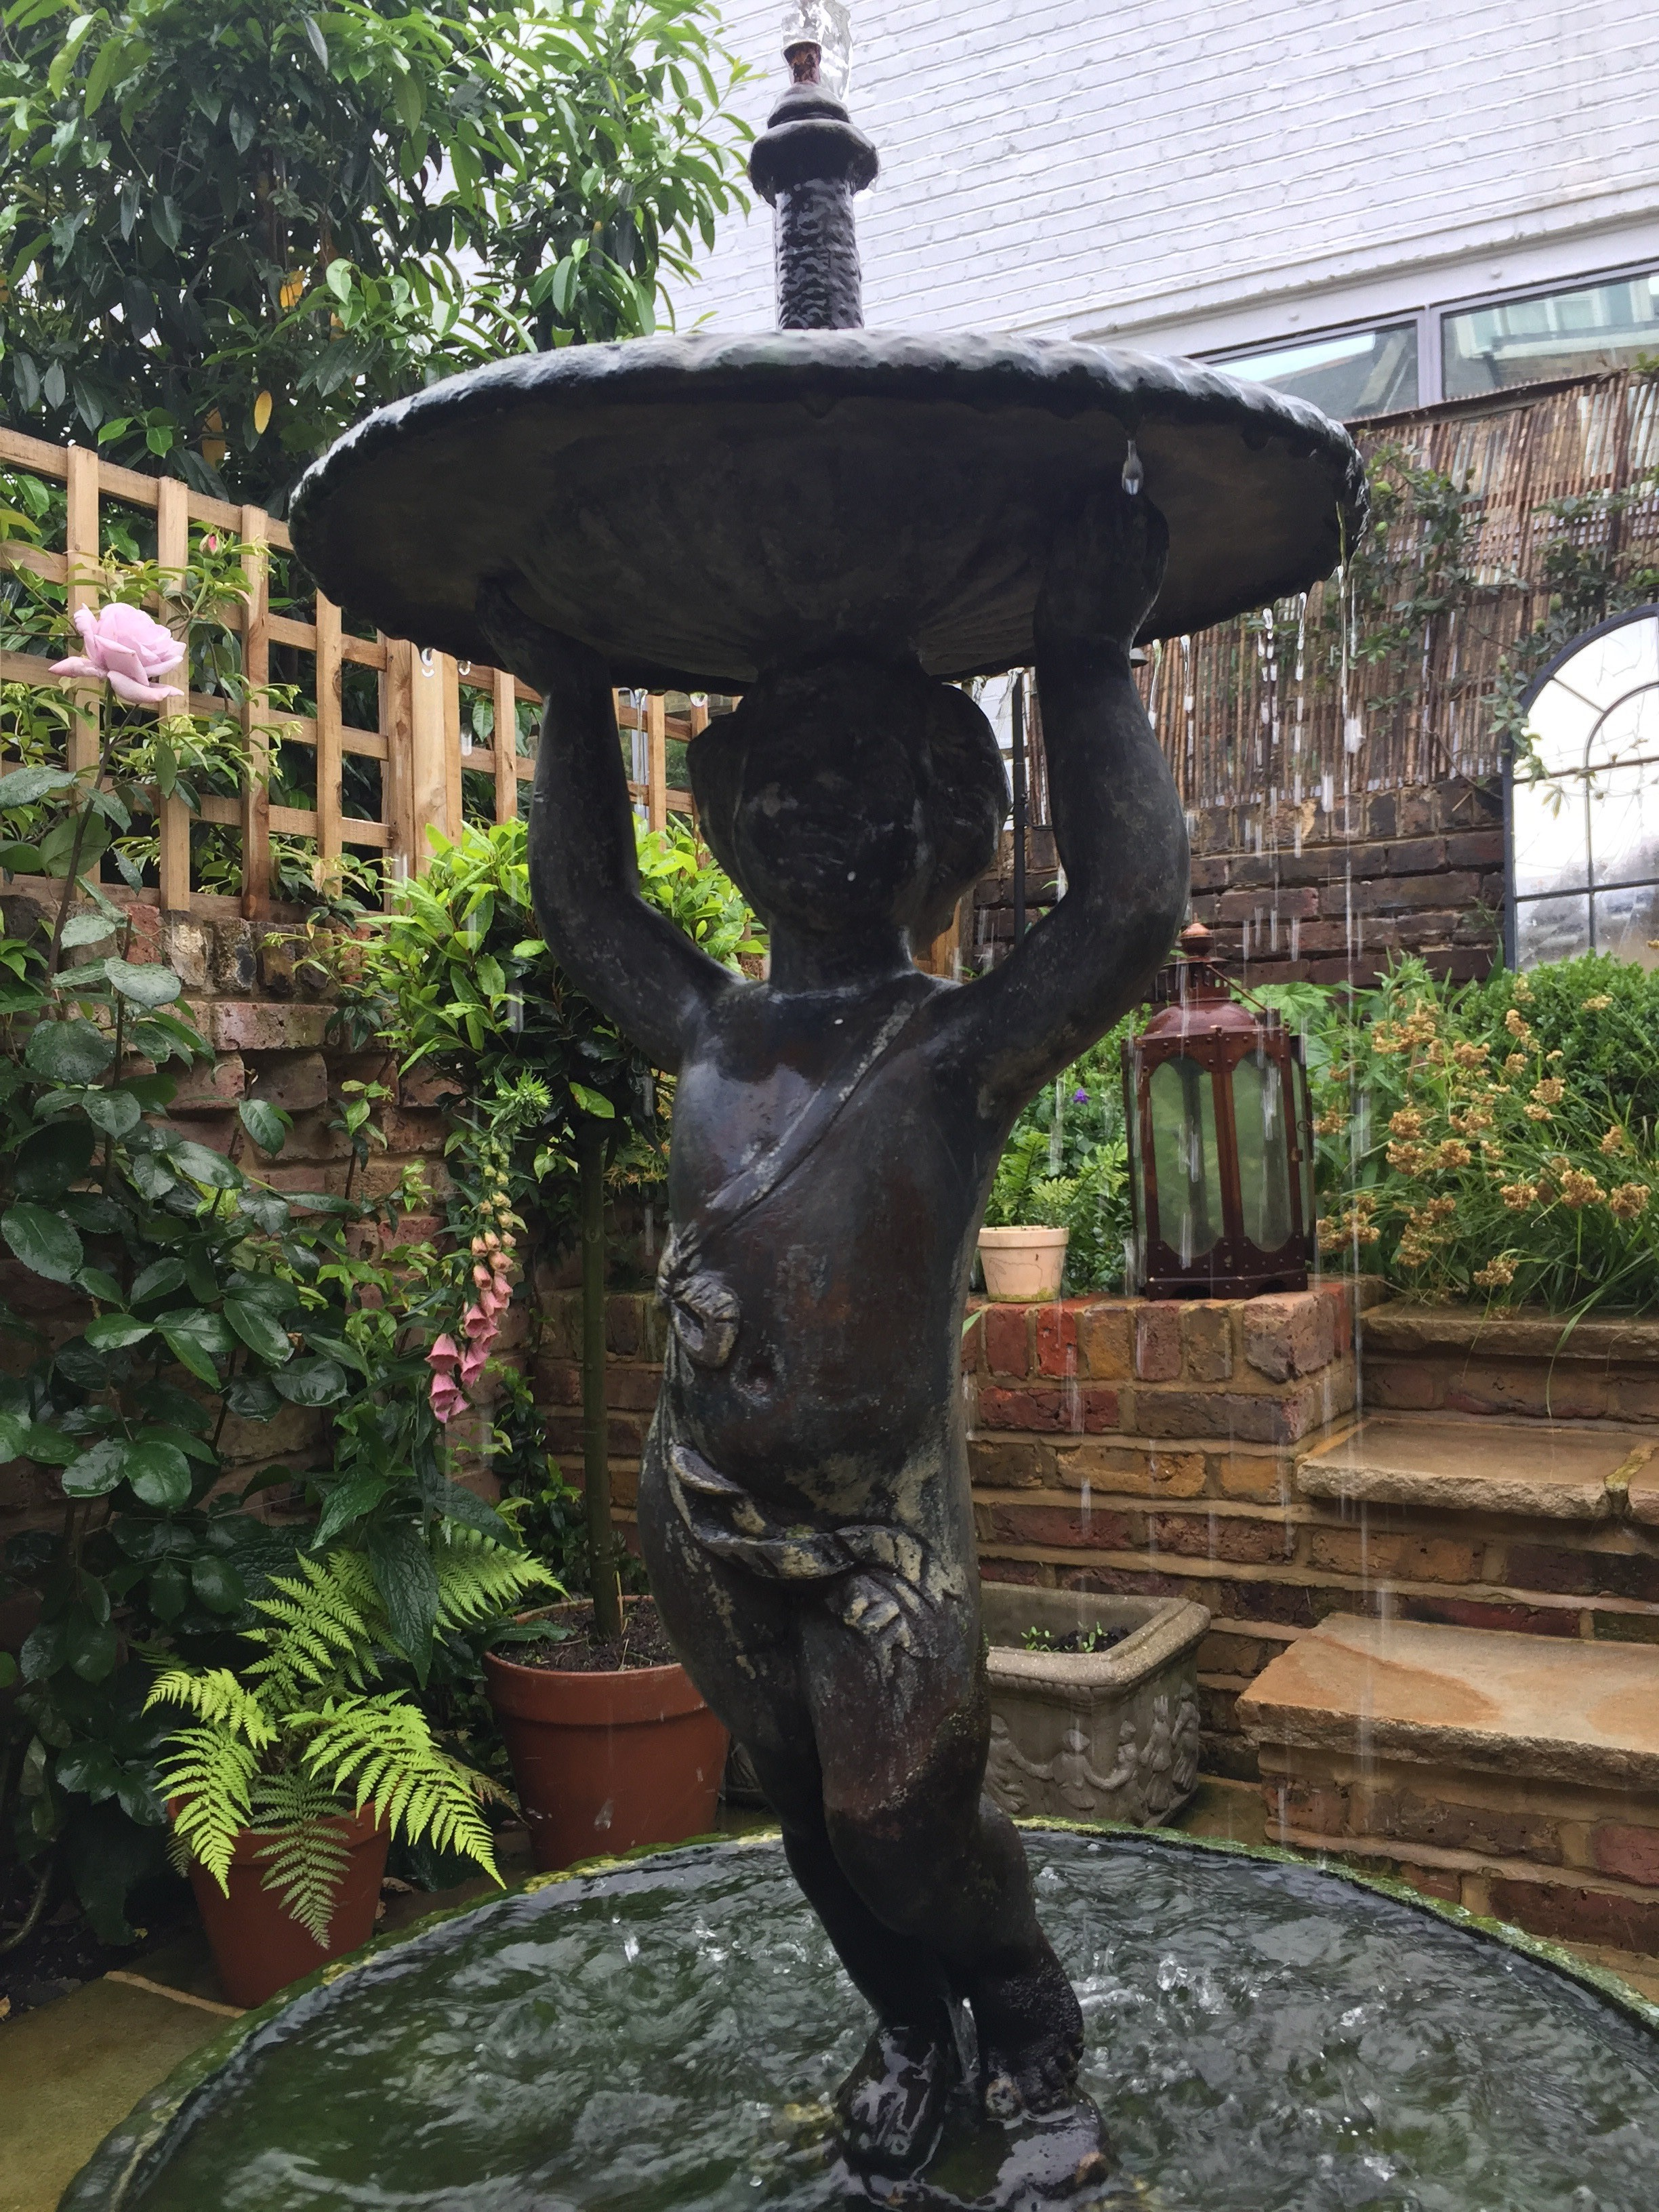 Buy antique cast iron water features and fountains from UKAA. Genuine old water features fitted in traditional gardens add character to your home